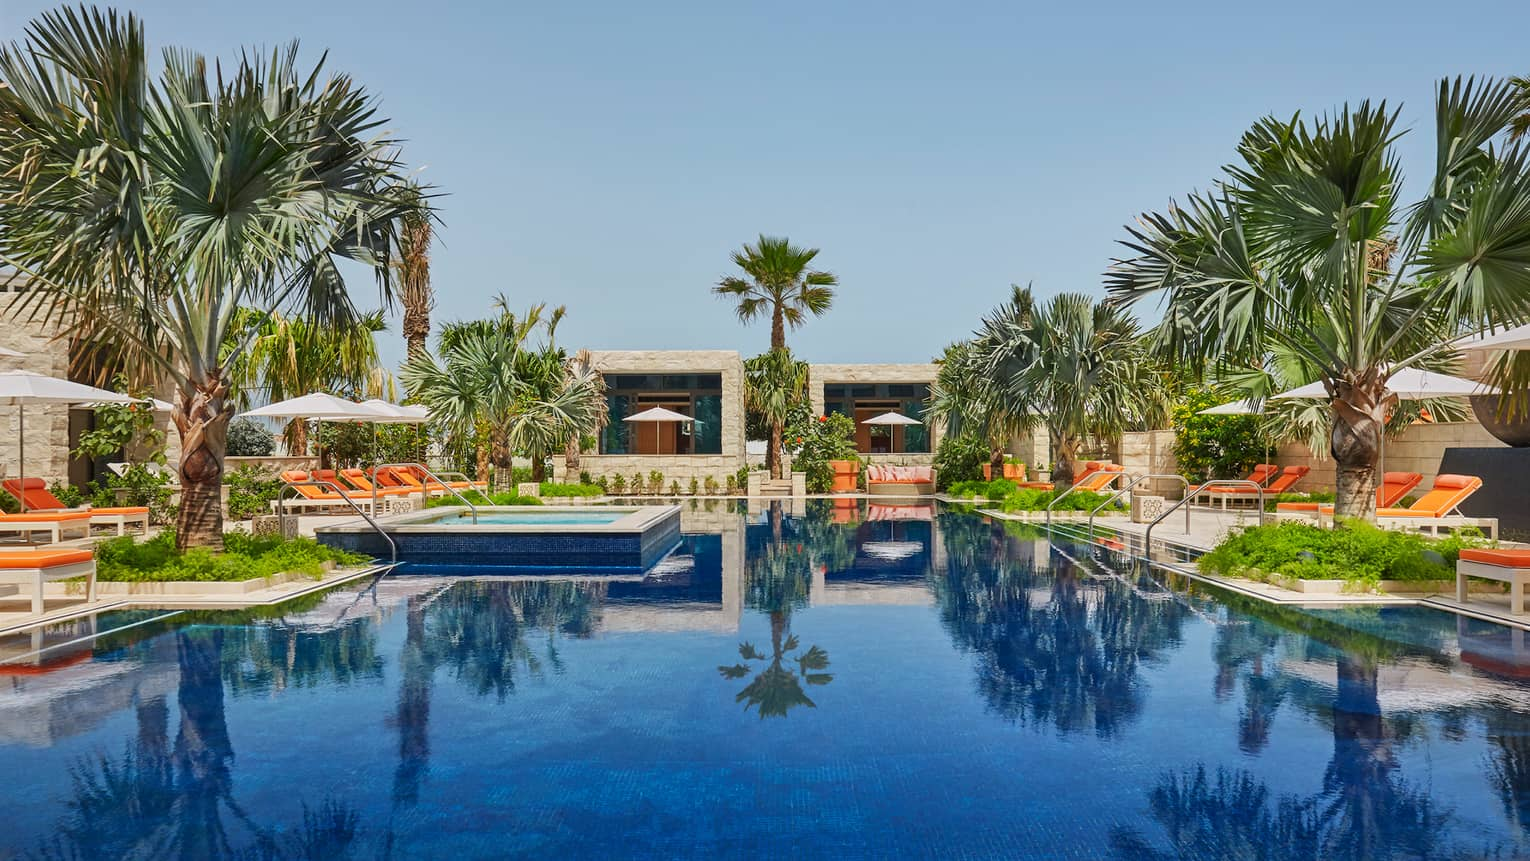 Azure adults-only swimming pool, surrounded by palm trees, orange lounge chairs, cabanas